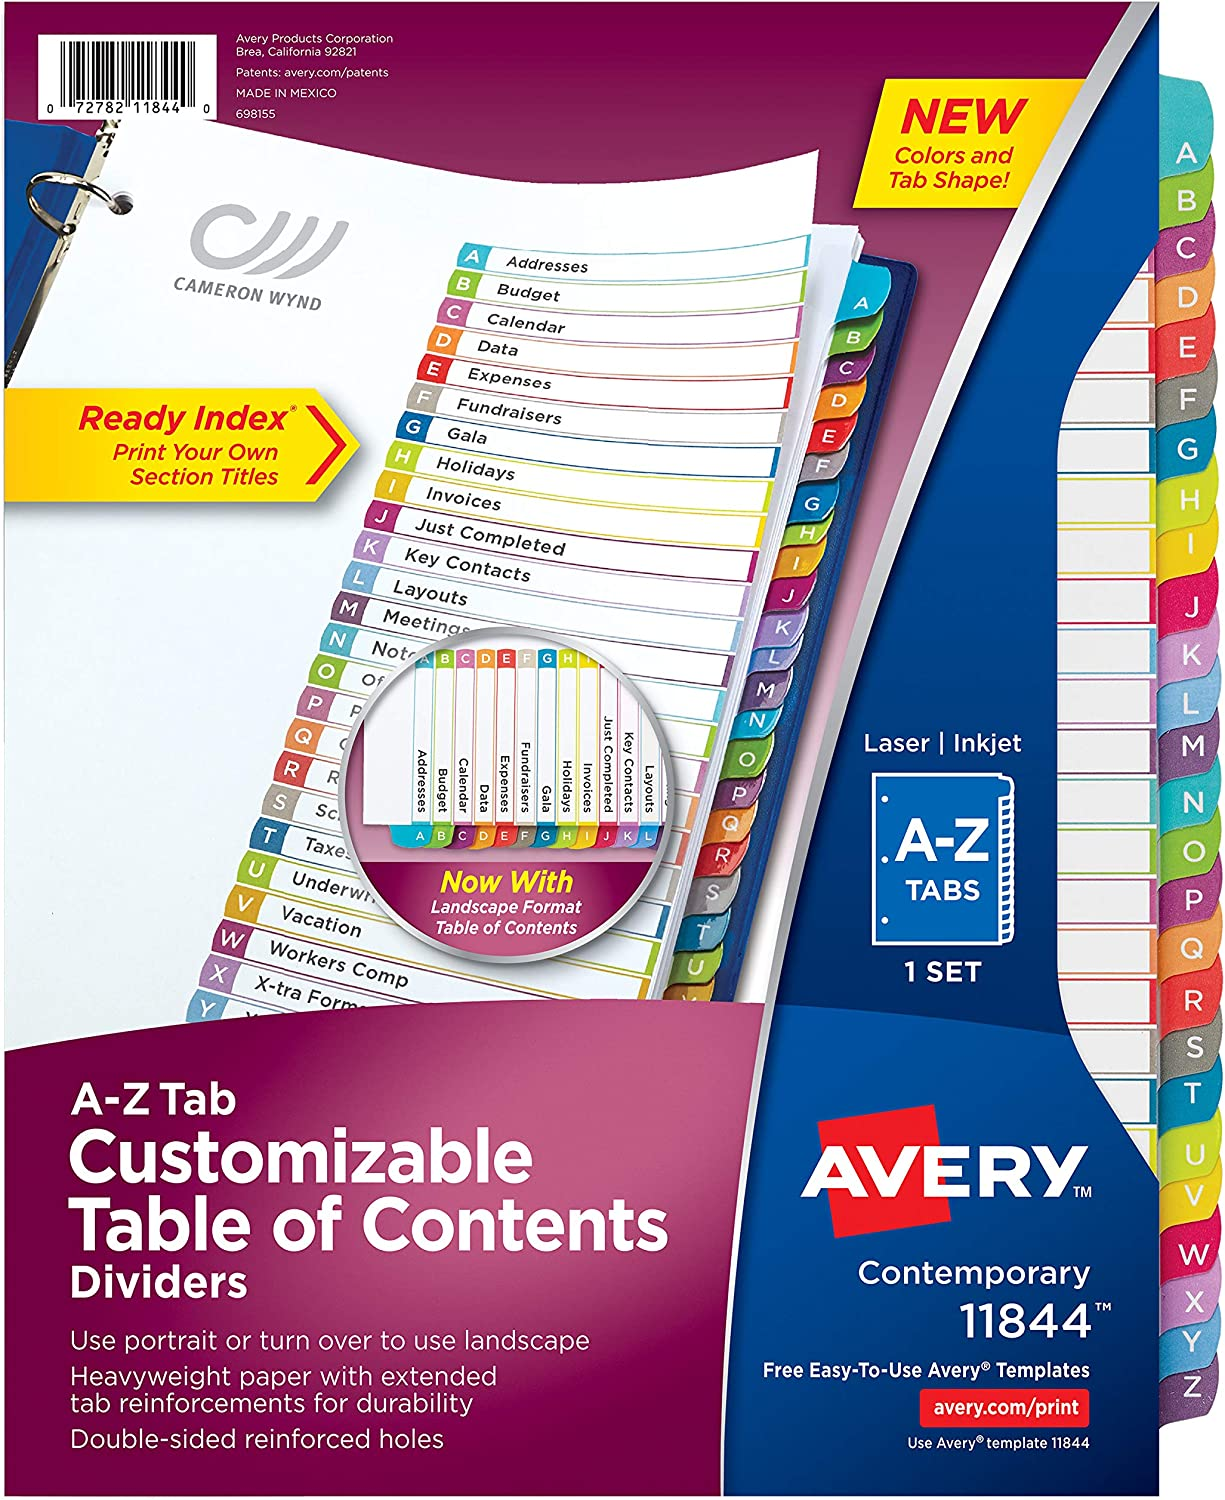 Avery A-Z 26 Tab Dividers for 3 Ring Binders, Customizable Table of Contents, Multicolor Tabs, 1 Set, 12 Packs (11844)